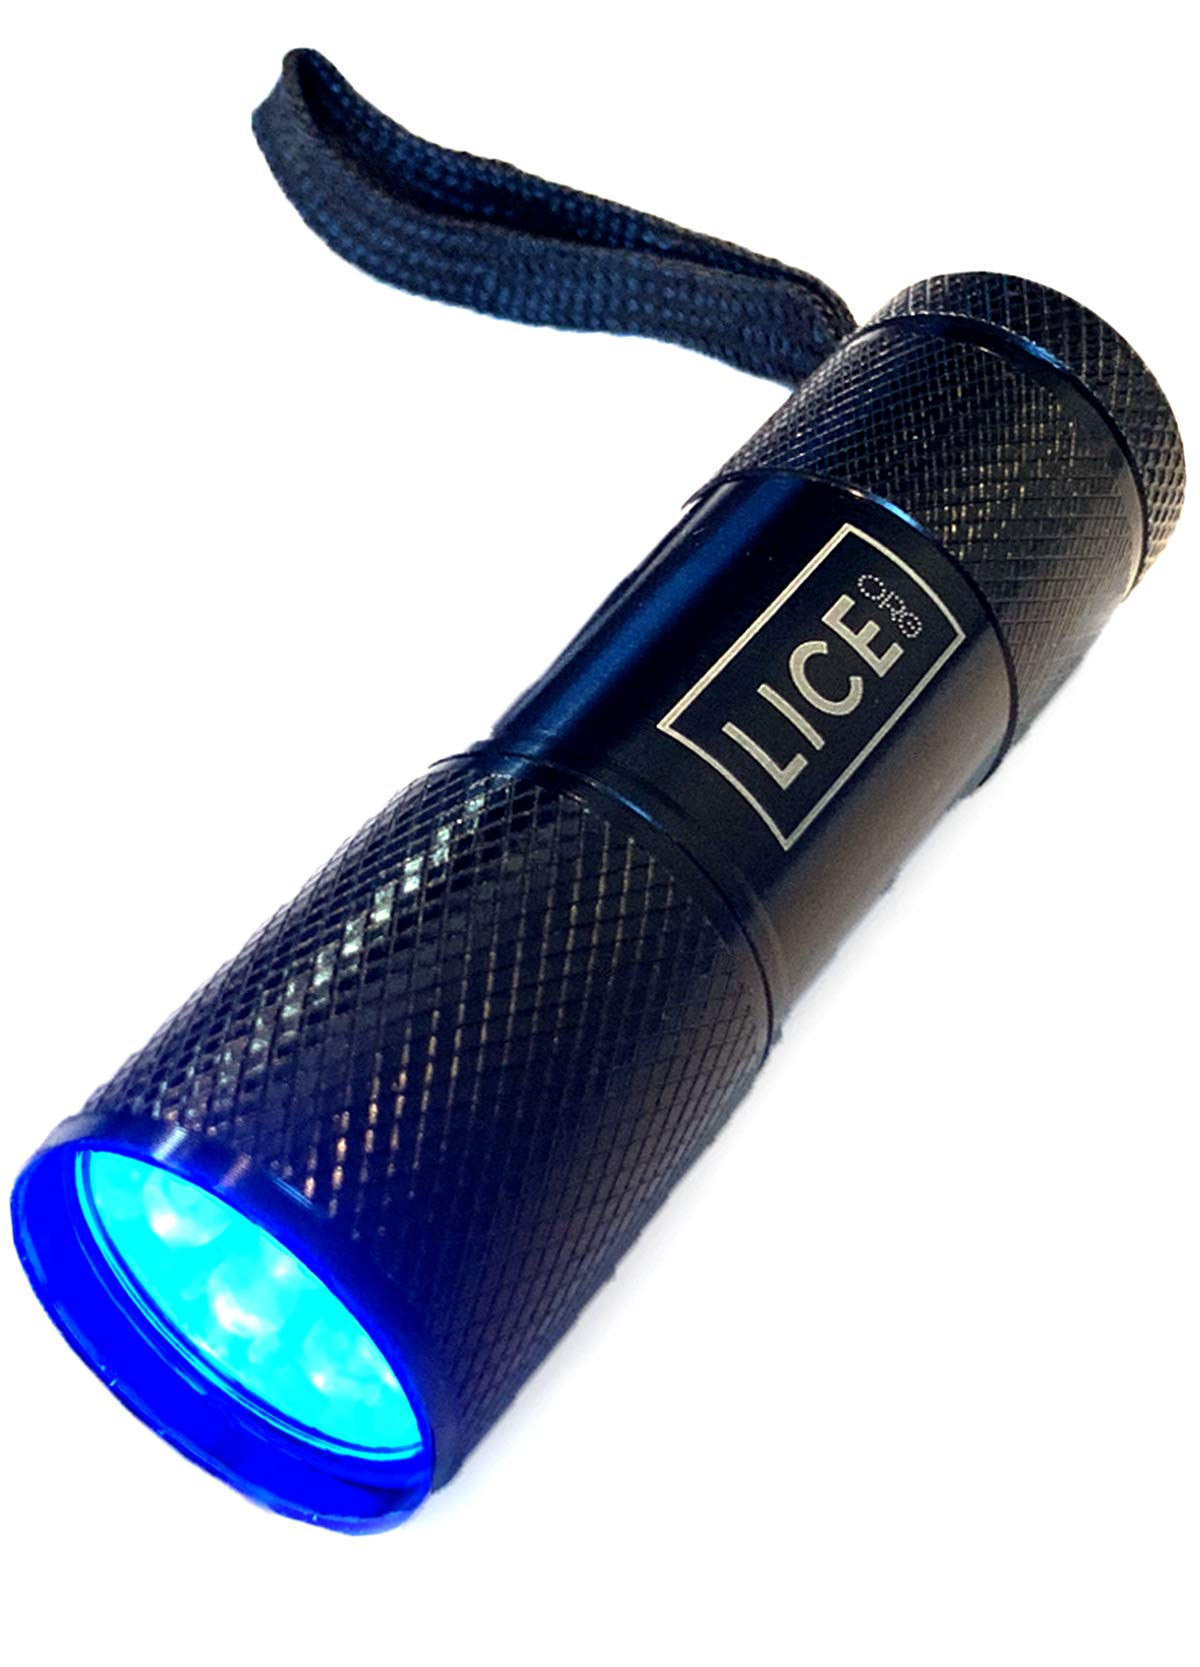 Official LICE.ORG Lice Light - Blacklight/UV Flashlight to Detect Head Lice, Bed Bugs Or Pet Urine (2) by LICE.ORG